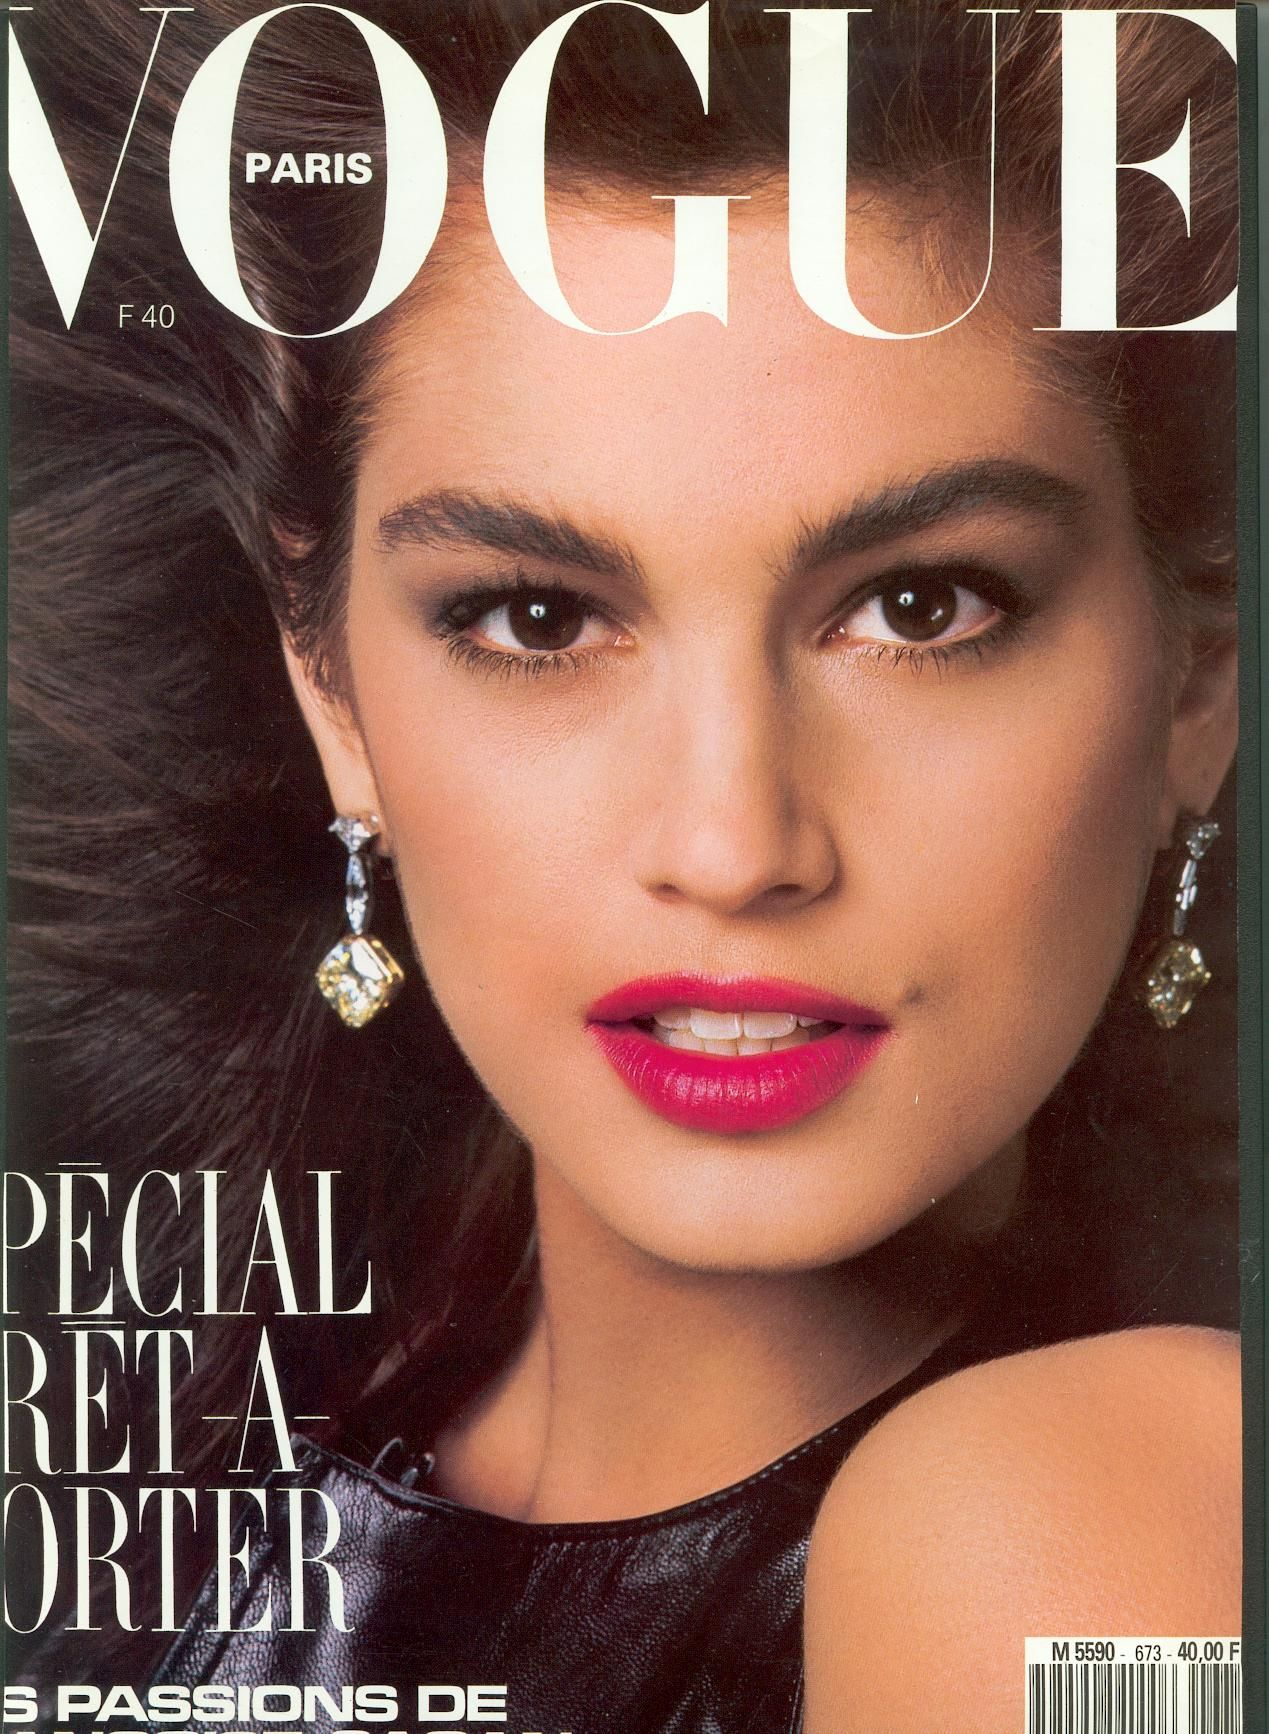 Cindy crawford covers-3477